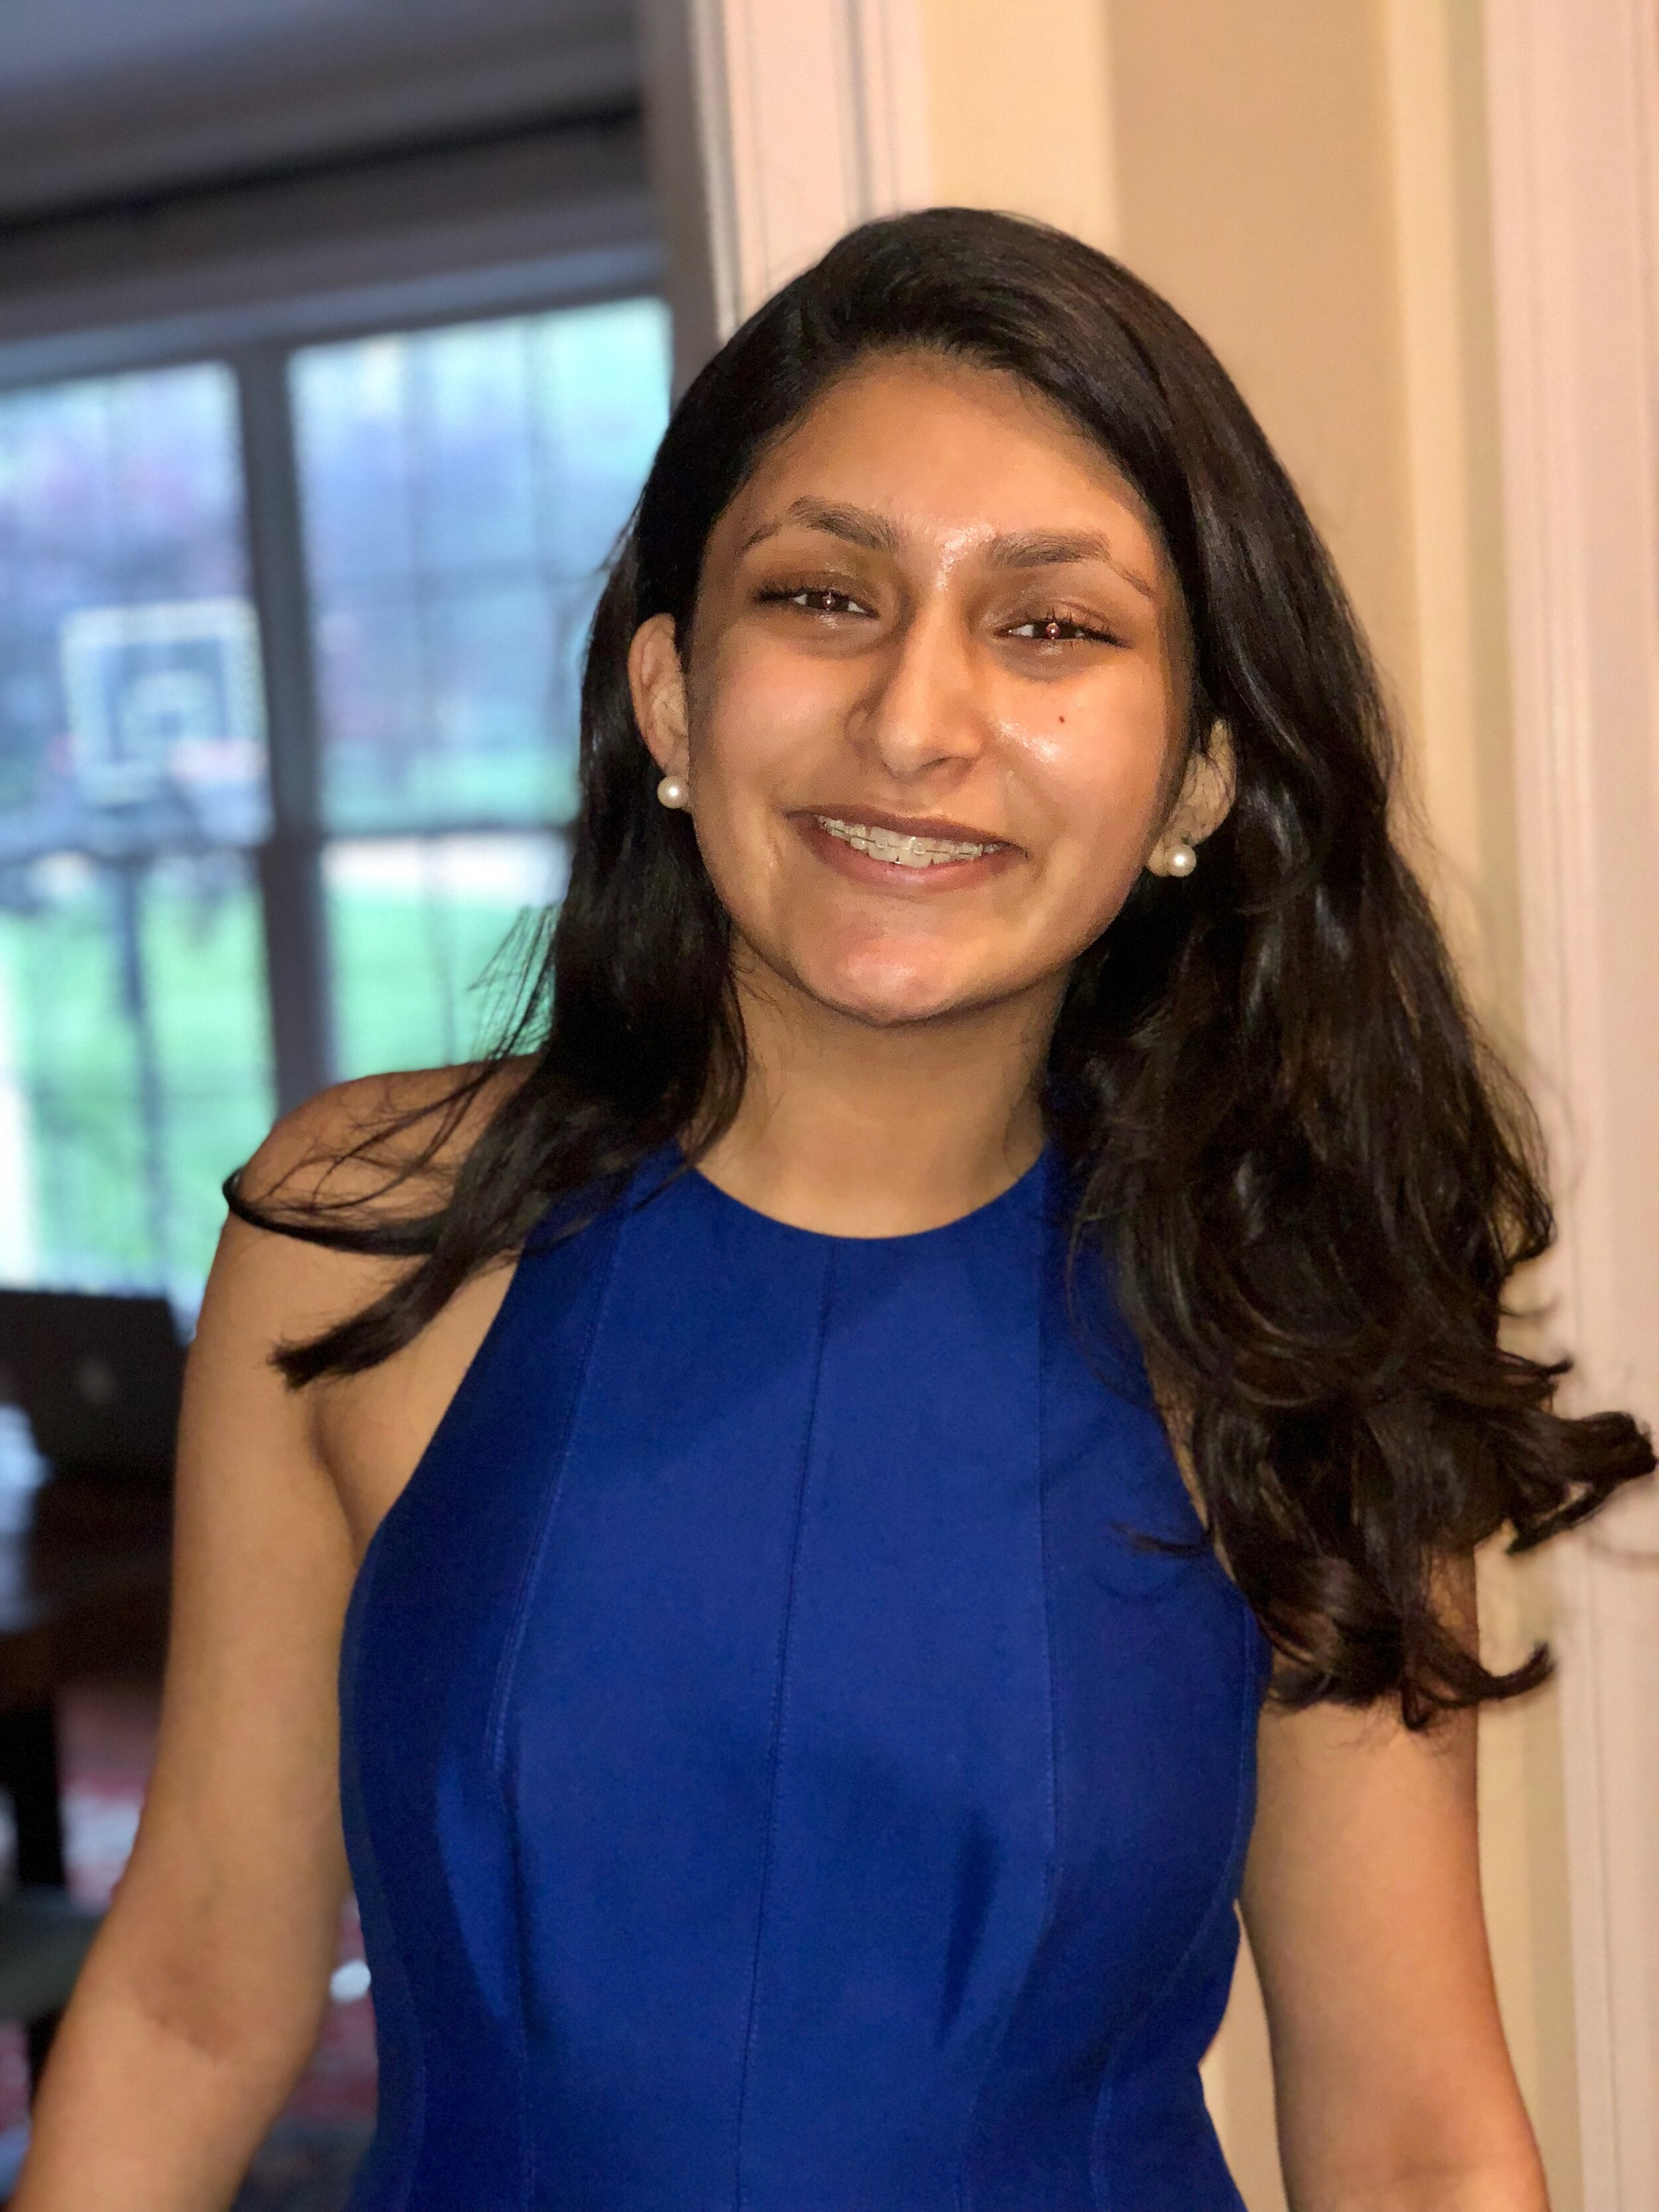 Anika Jaswal   Radnor HS Ambassador (Pennsylvania)  Anika is 14 years old and a freshman at Radnor High School in Pennsylvania. After noticing women's' underrepresentation in the science and engineering workforce, she became determined to make change for women. Anika is incredibly excited to be joining WiSTEM and is especially interested in robotics, coding, political science and social justice. Anika is part of her school Ultimate Frisbee Team and helps volunteer at a local pet shelter. Anika also plays the cello for the Philadelphia Sinfonia and plays competitive basketball for AAU.